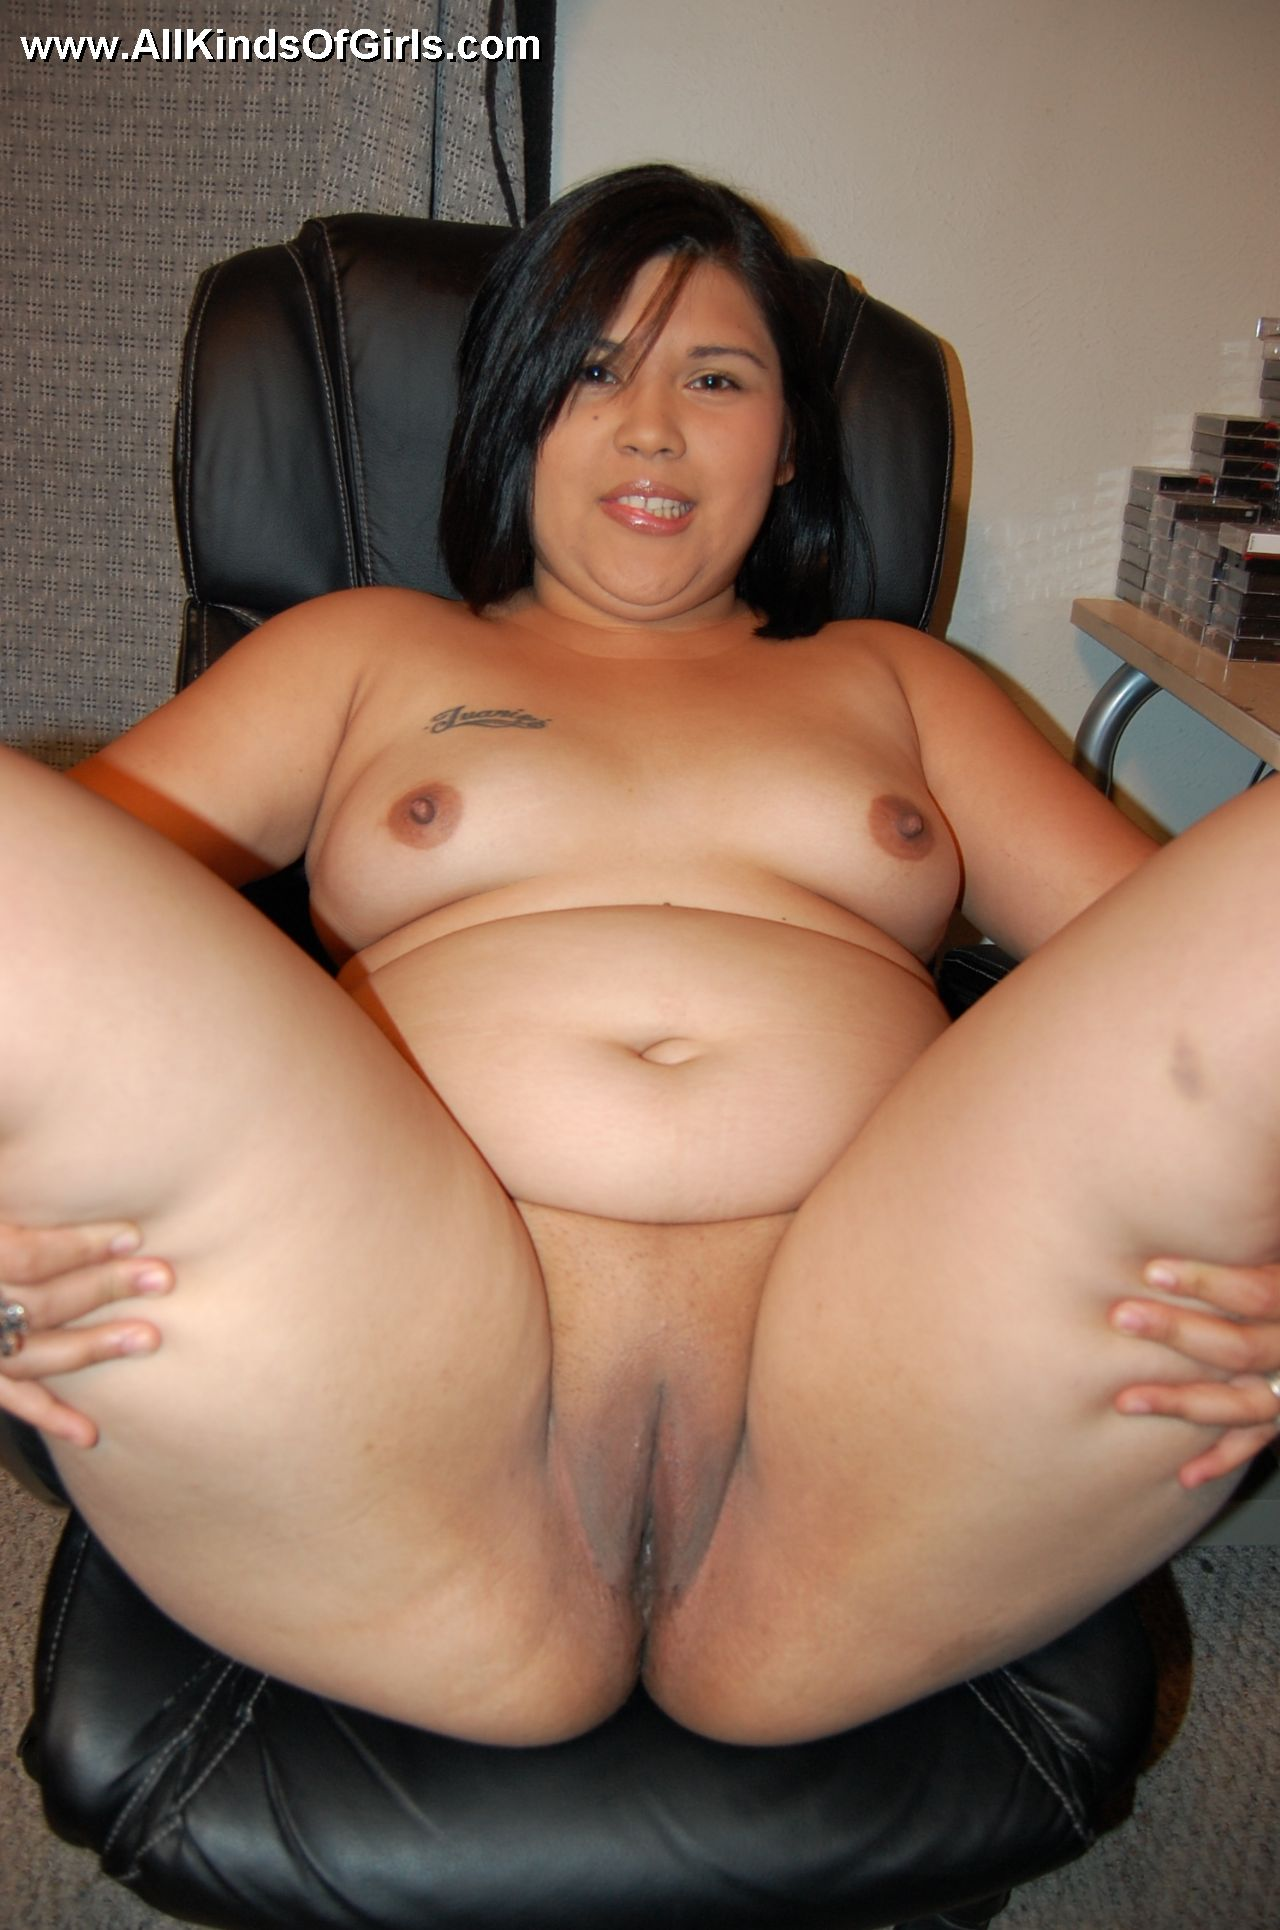 Chubby asian girls